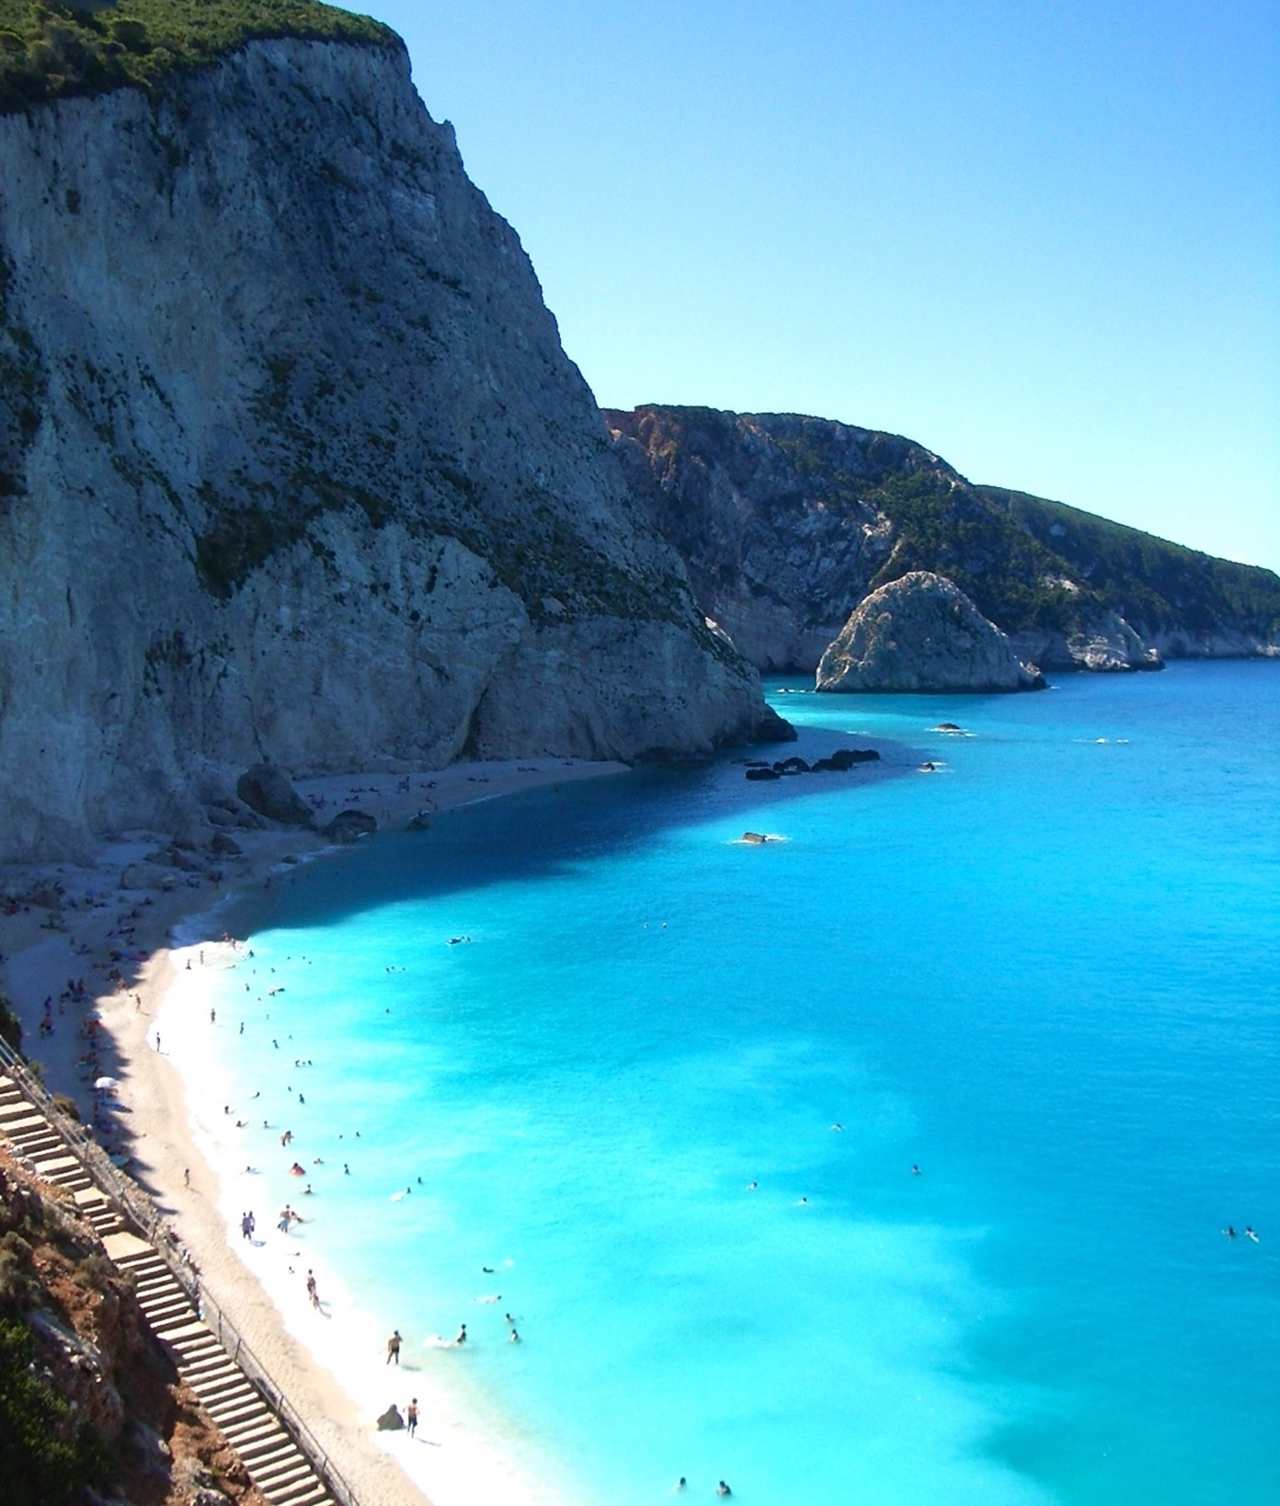 Picturesque beaches of the Greek island of Lefkada 08